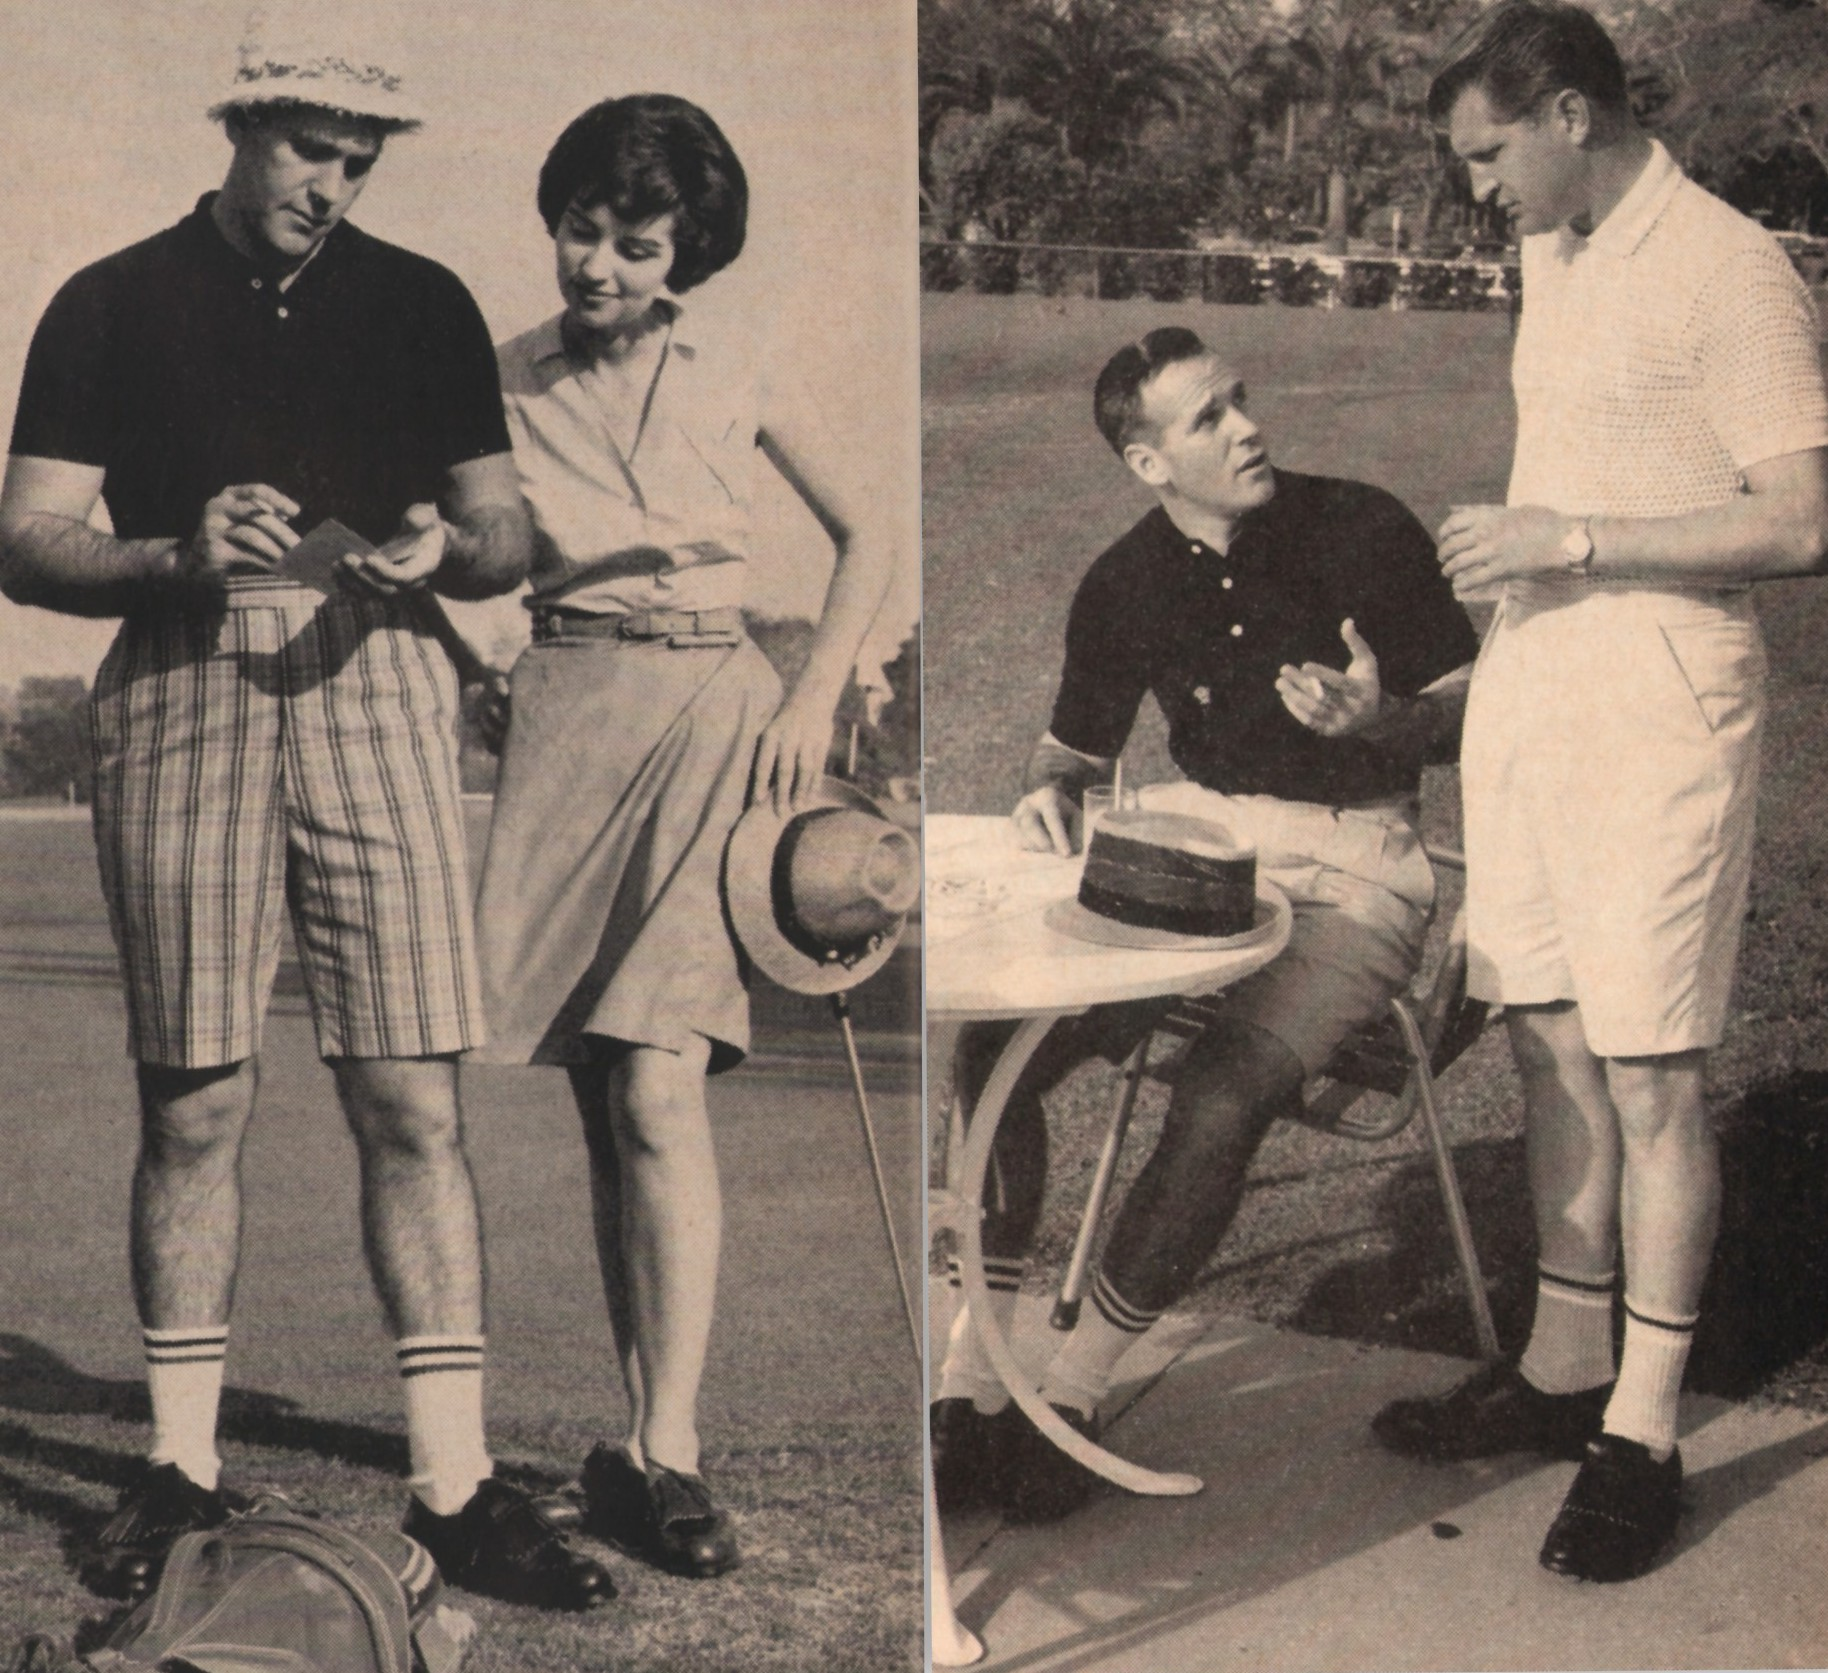 Fifty years ago, my father, and just about everyone else, played golf in Izod socks like these.